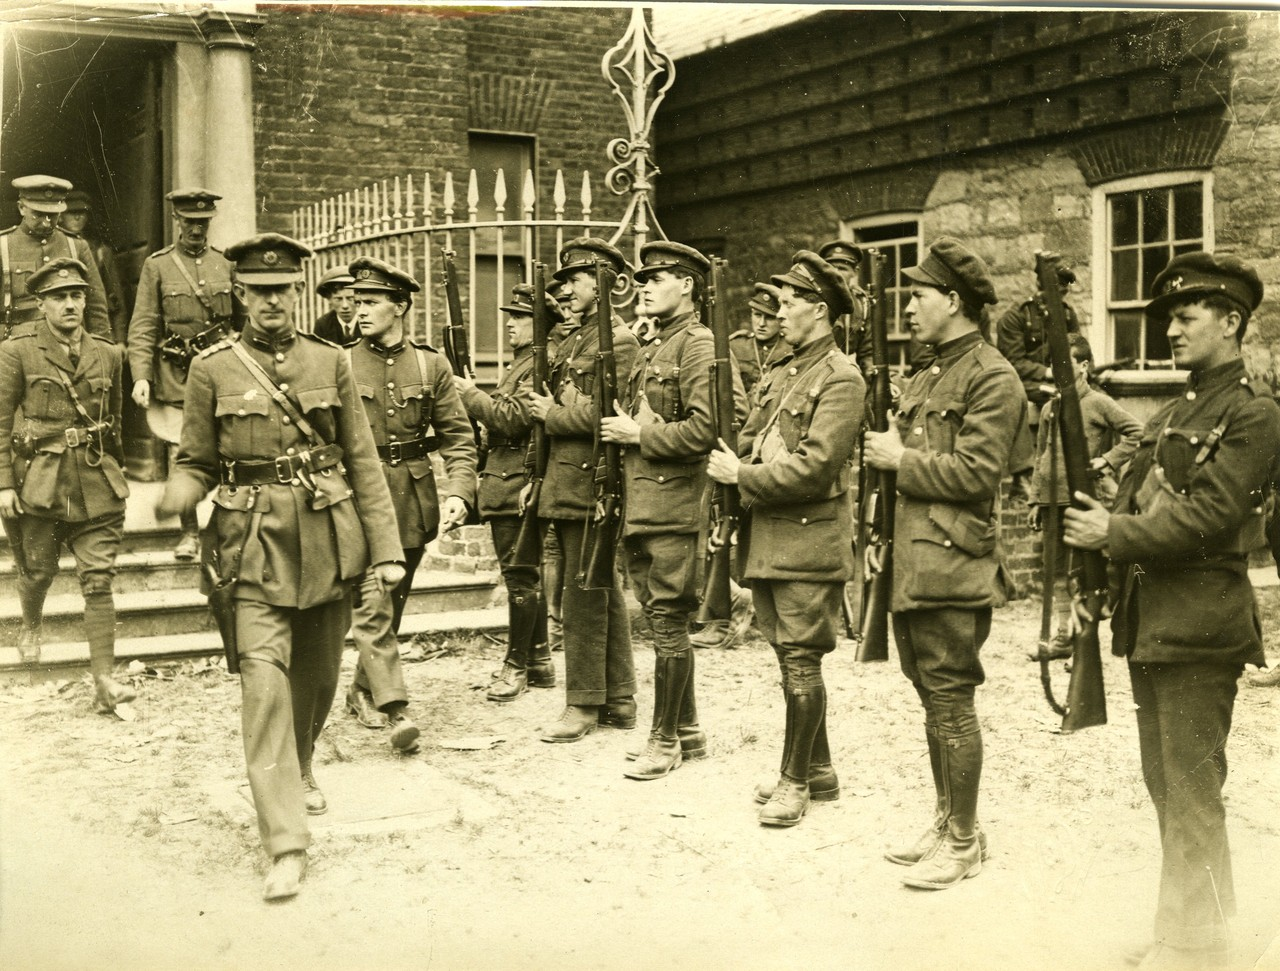 Irish Free State Army officers leaving a building, including Michael